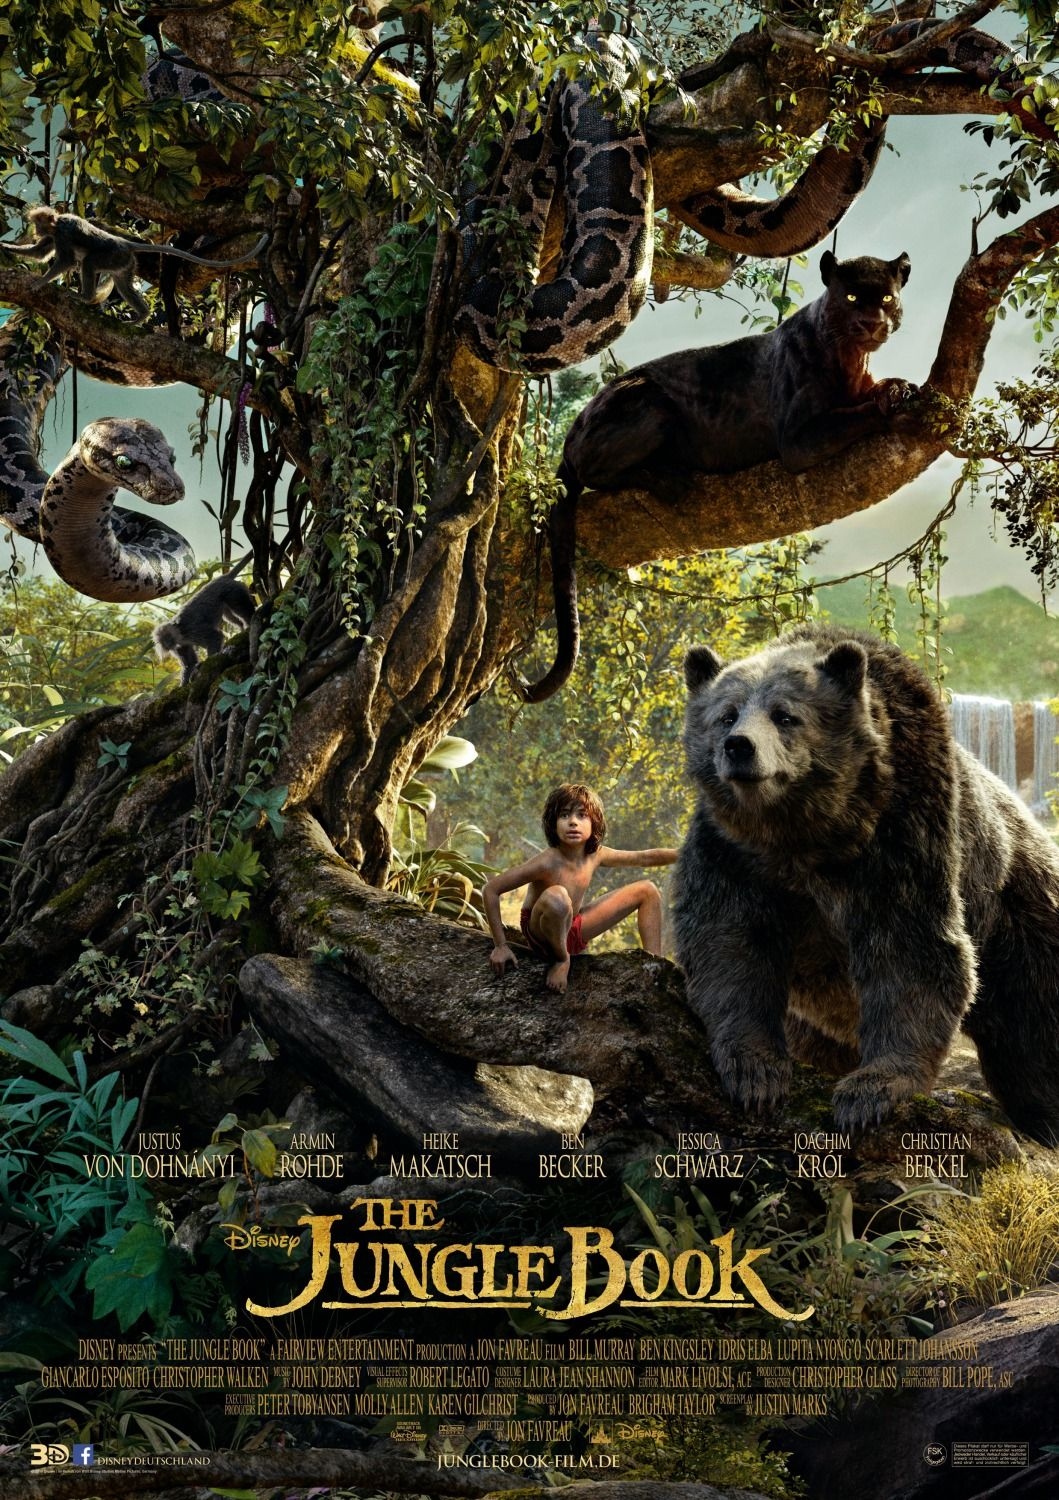 THE JUNGLE BOOK (2016) - IMAX Preview, Featurette and 14 ...